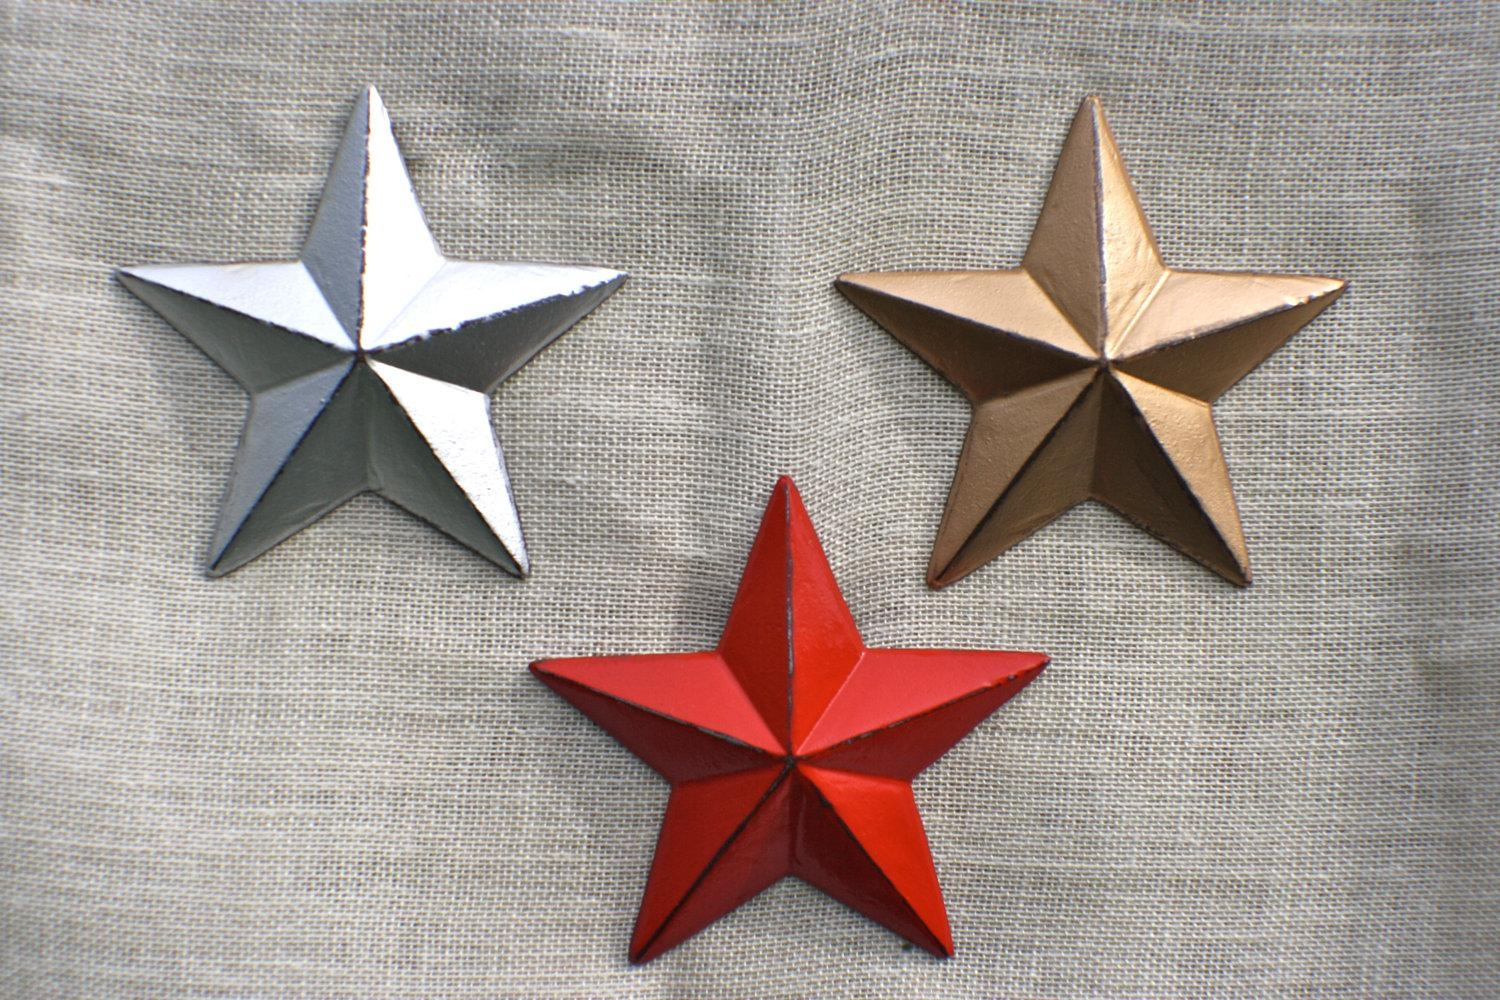 Star Wall Decor Ideas: 20 Photos Texas Star Wall Art